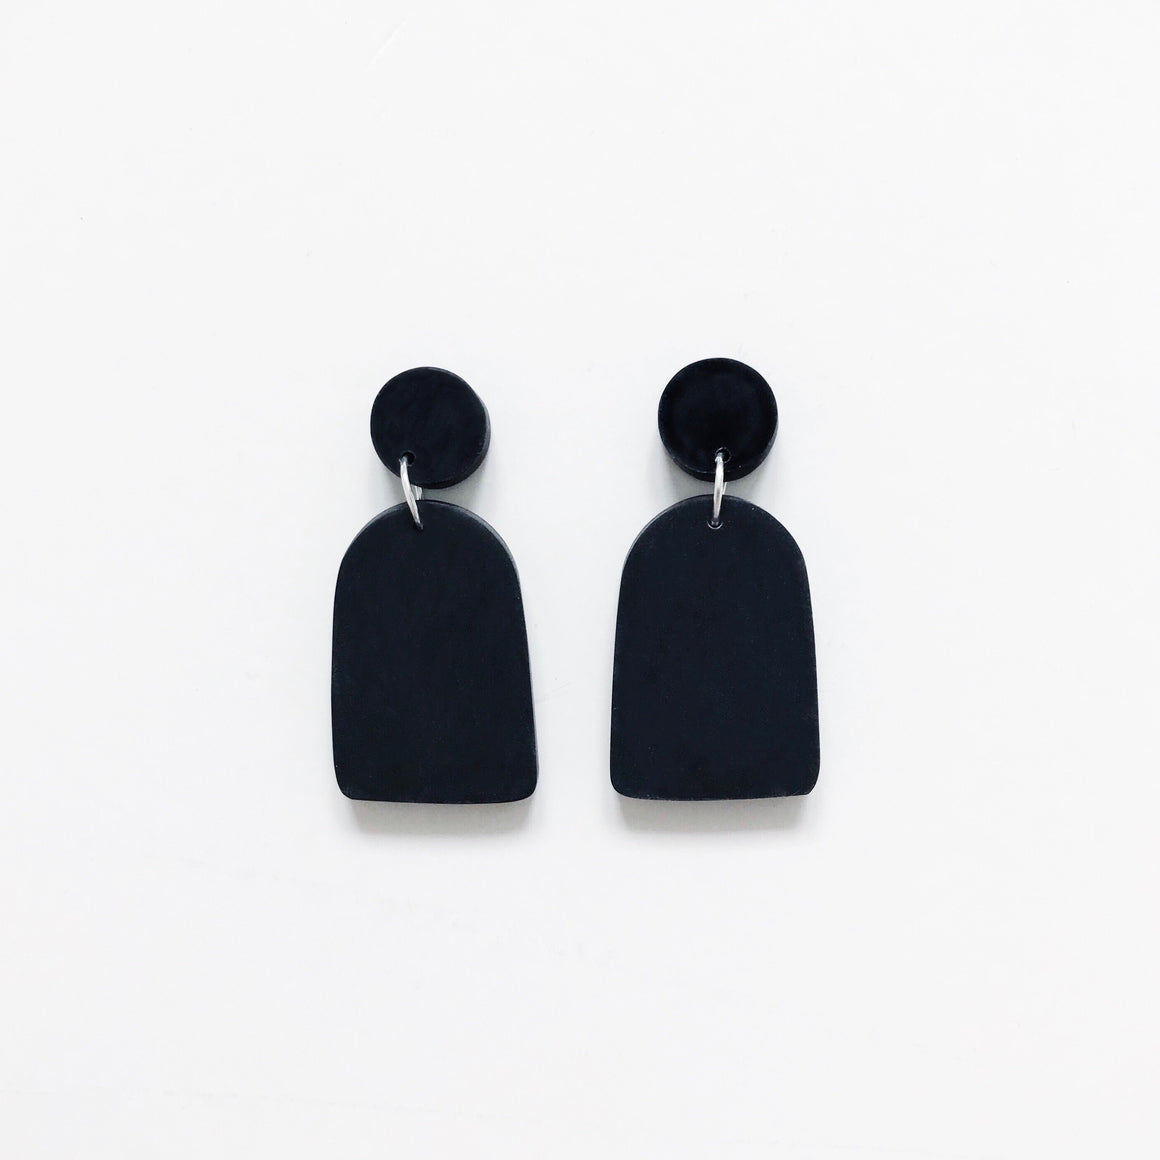 Arch Drop Earrings - Black